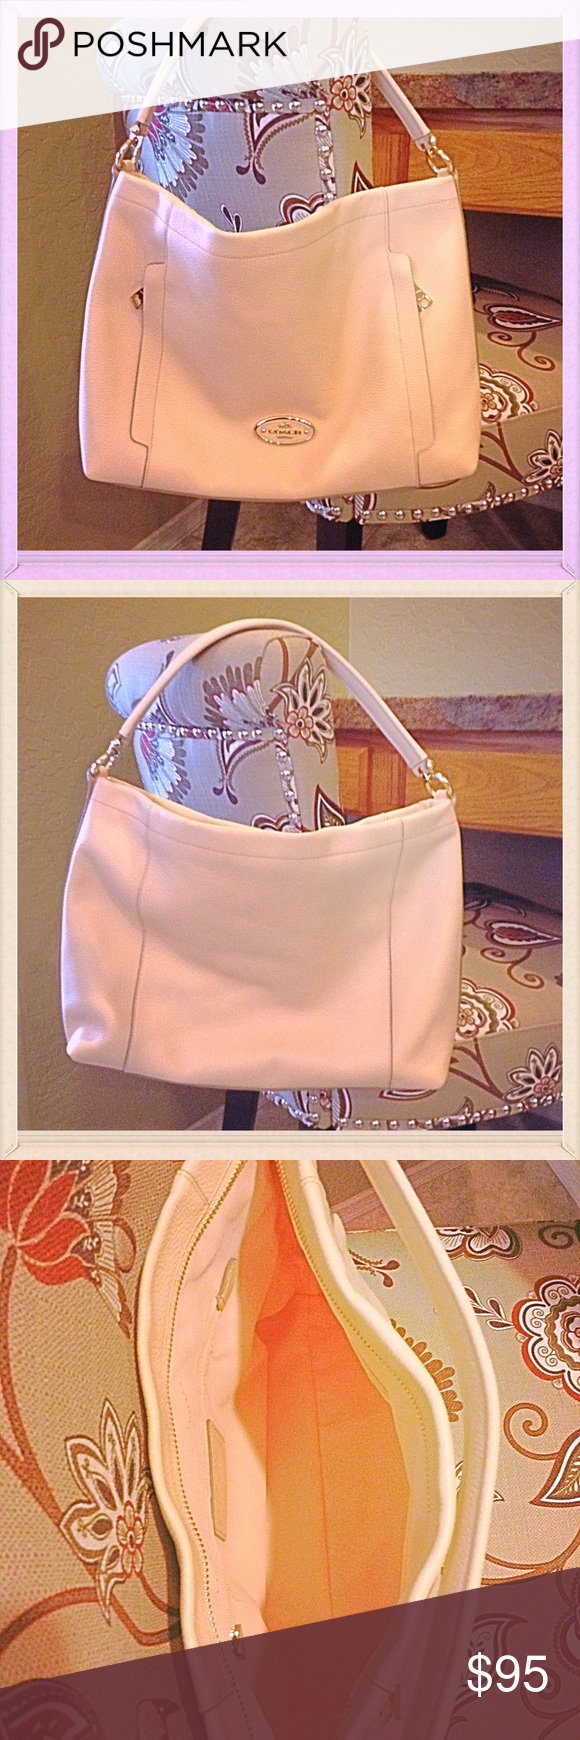 """Coach Pebble Leather Purse NWOT Beautiful peachy/pink pebble leather with gold/rose tone hardware. Never used, very classy. Measures 15"""" tall, 10"""" wide, 3"""" bottom width. Coach Bags Shoulder Bags"""